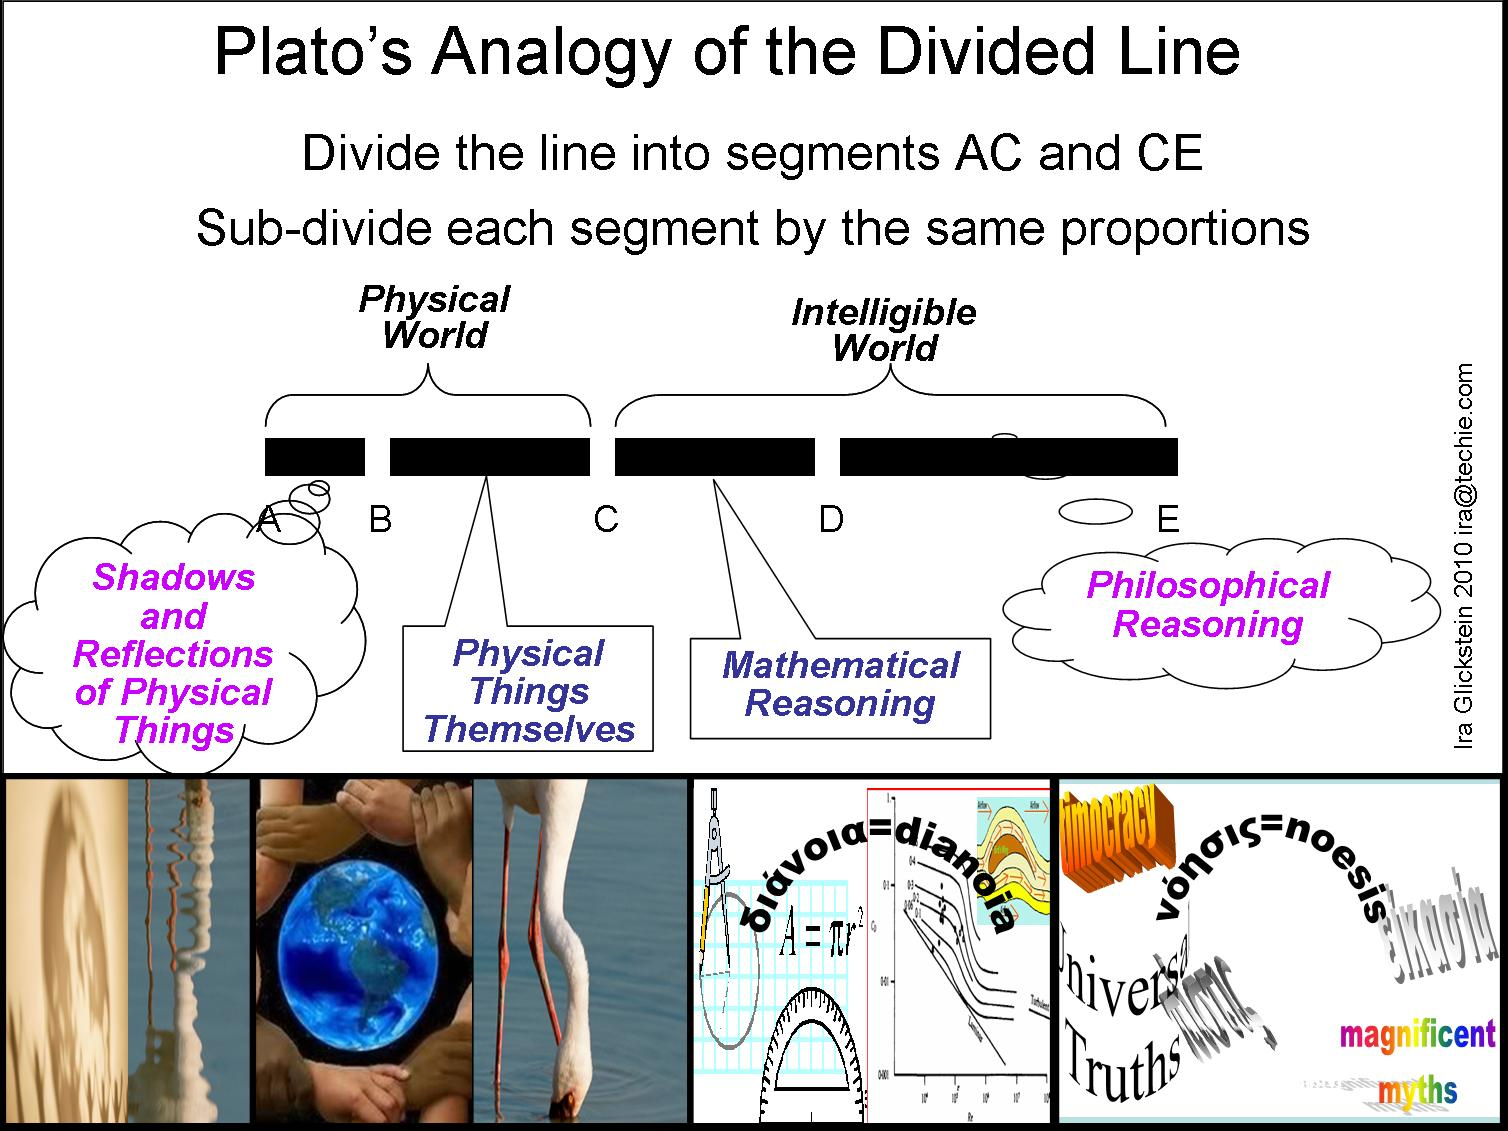 an analysis of the analogy of plato The 'allegory of the cave' is a theory put forward by plato, concerning human  perception plato claimed that knowledge gained through the.